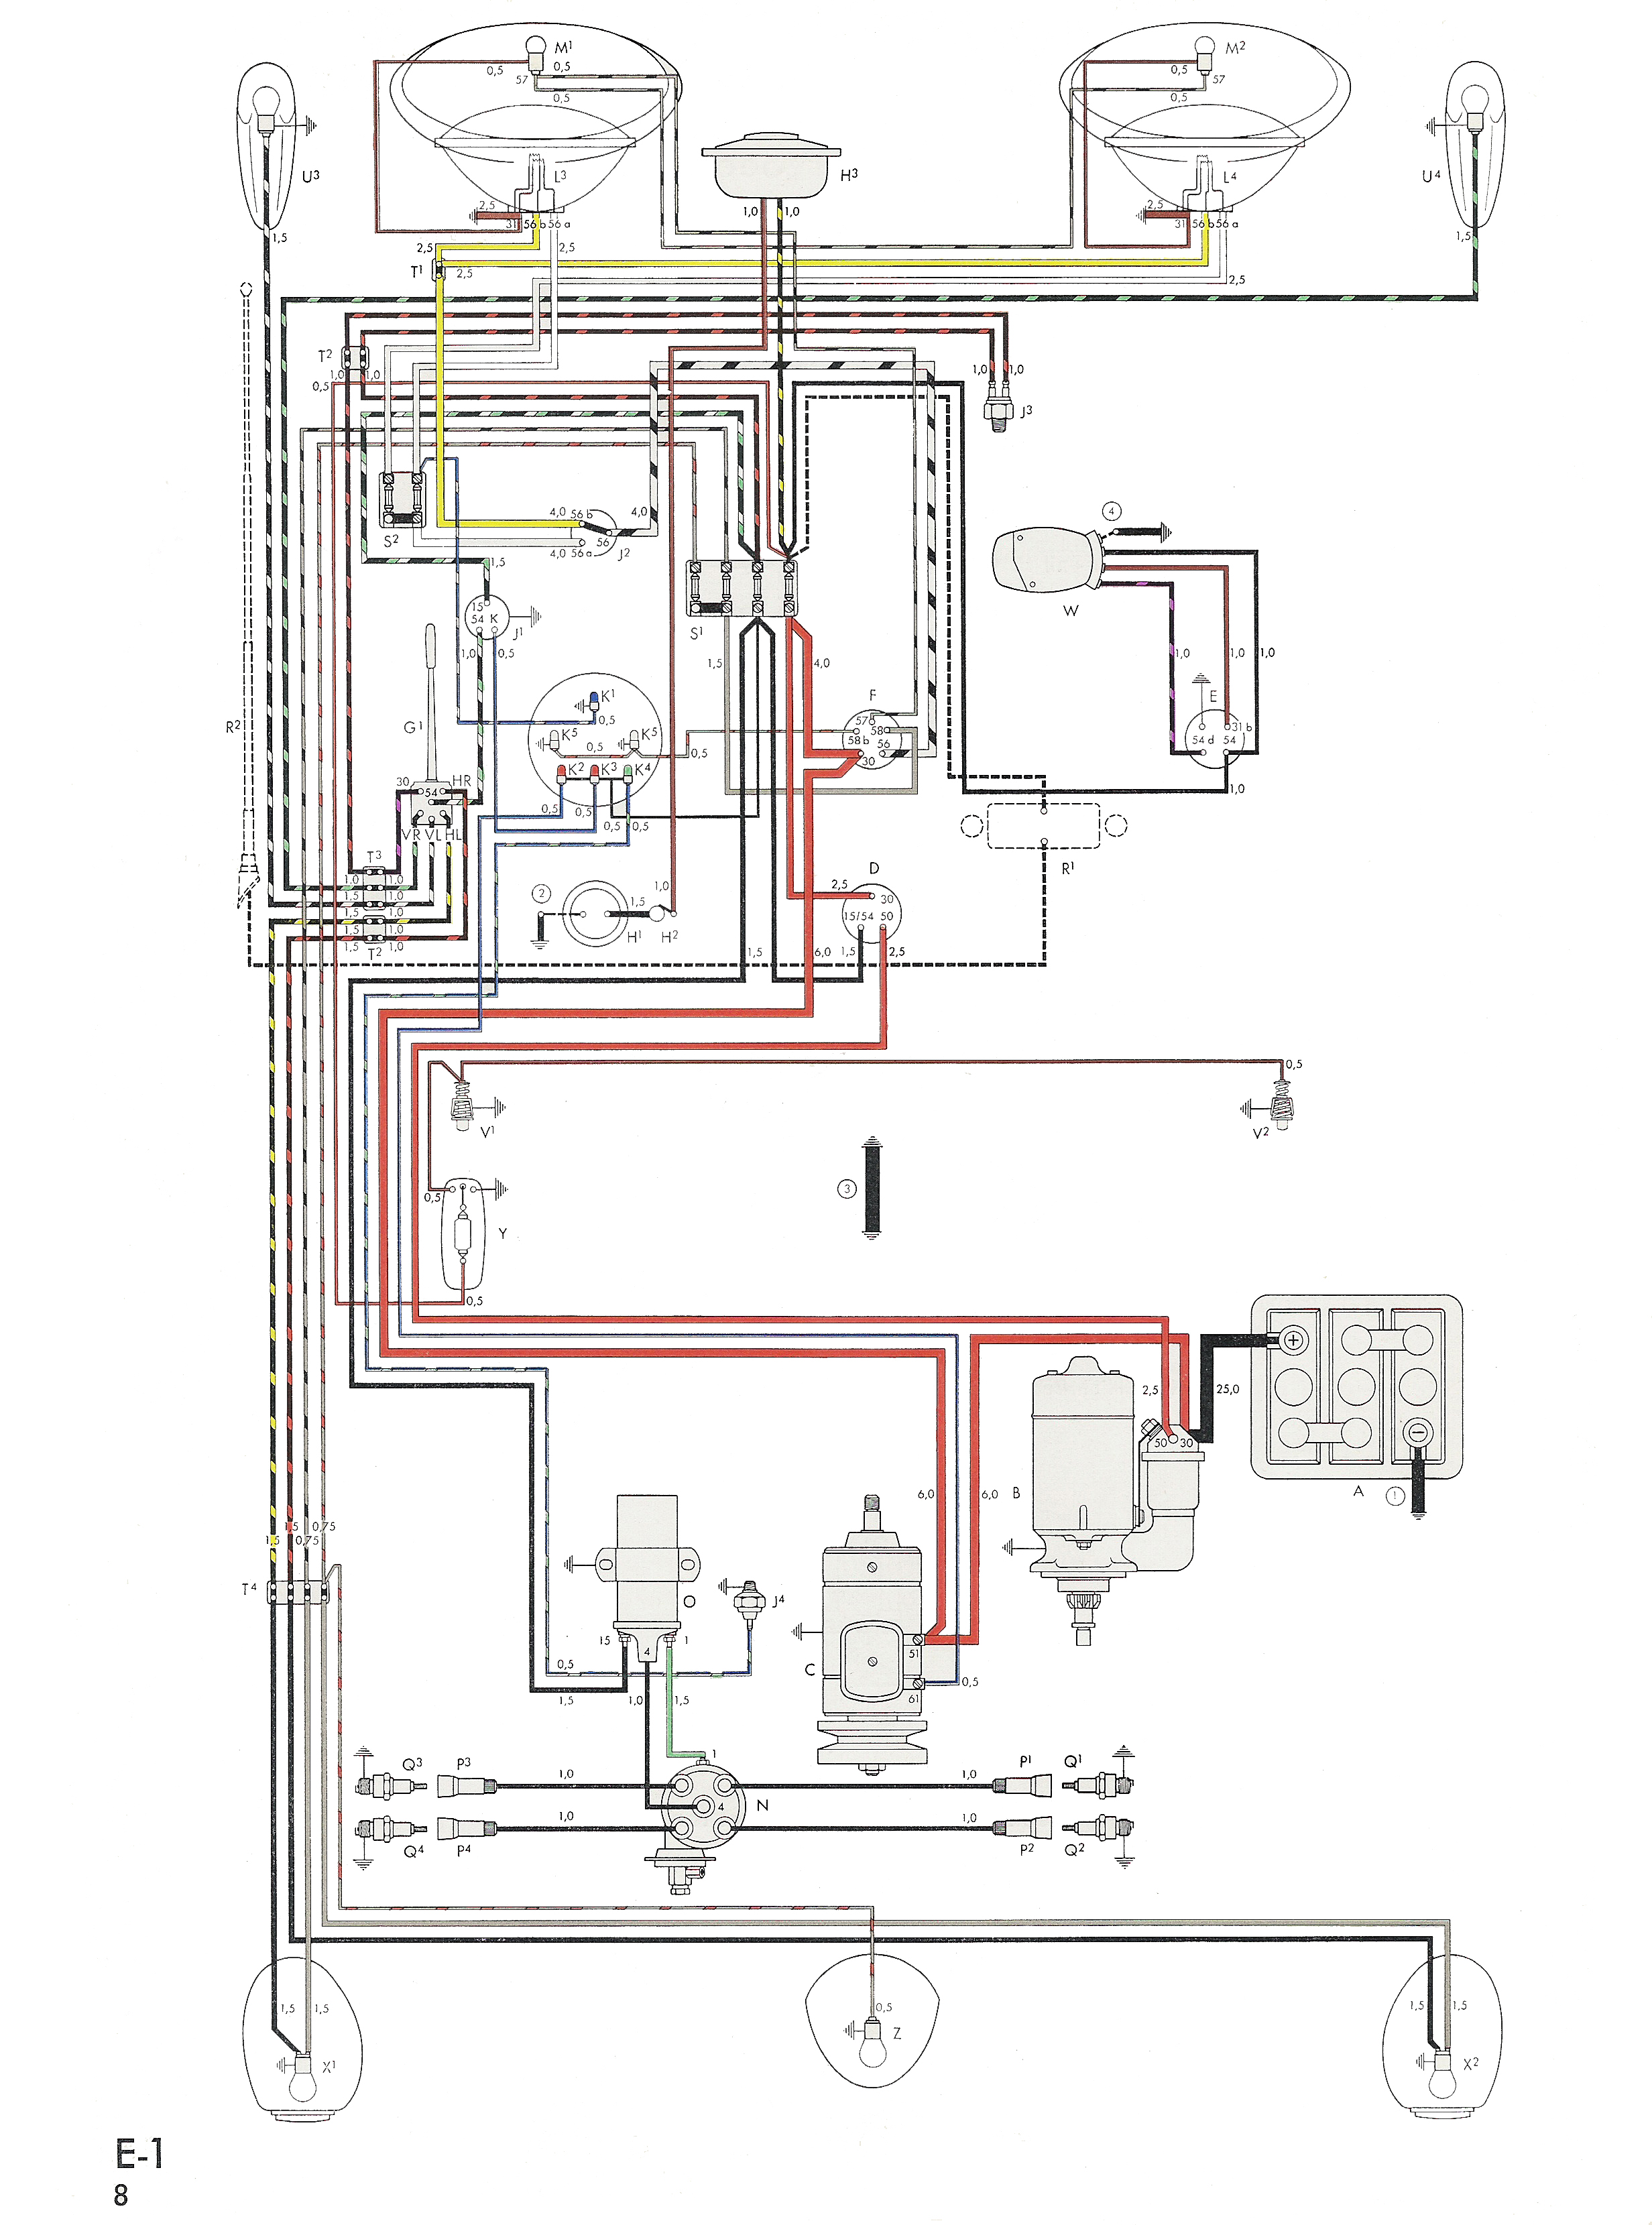 Vw Bug Wire Harness Auto Electrical Wiring Diagram Cnt3797 For Circuit Board Thesamba Com Type 1 Diagrams